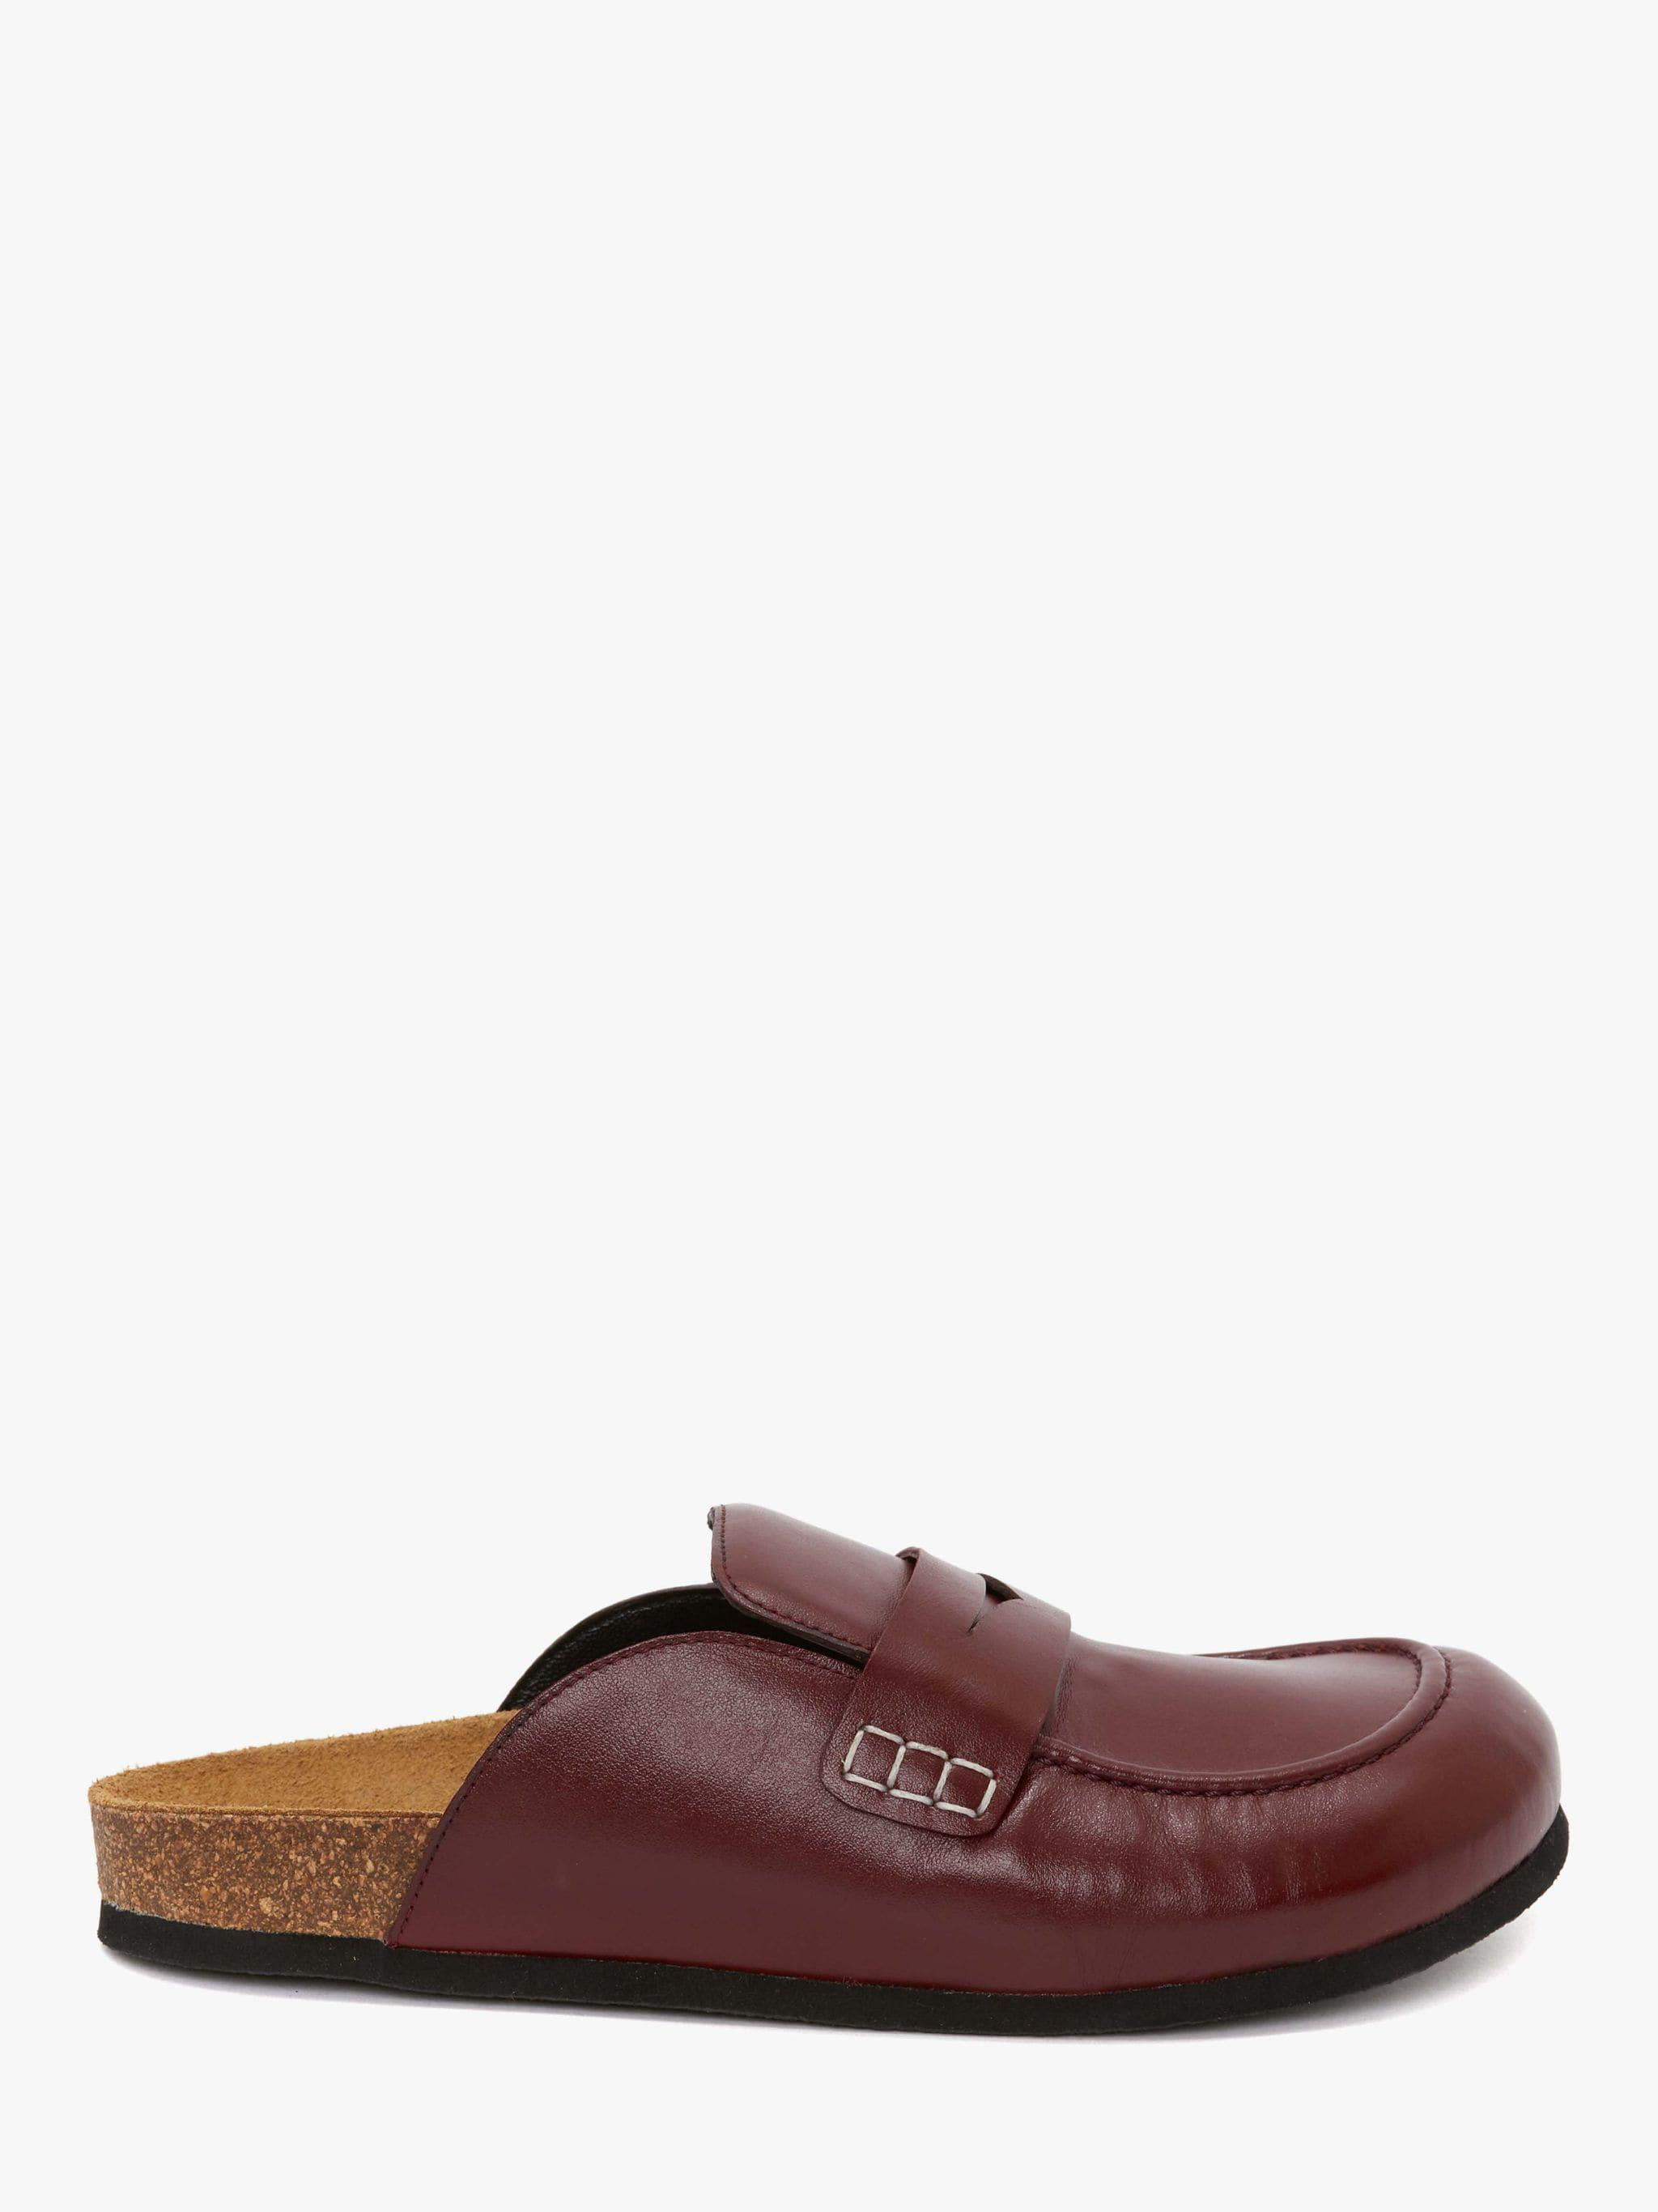 WOMEN'S LOAFER - LEATHER